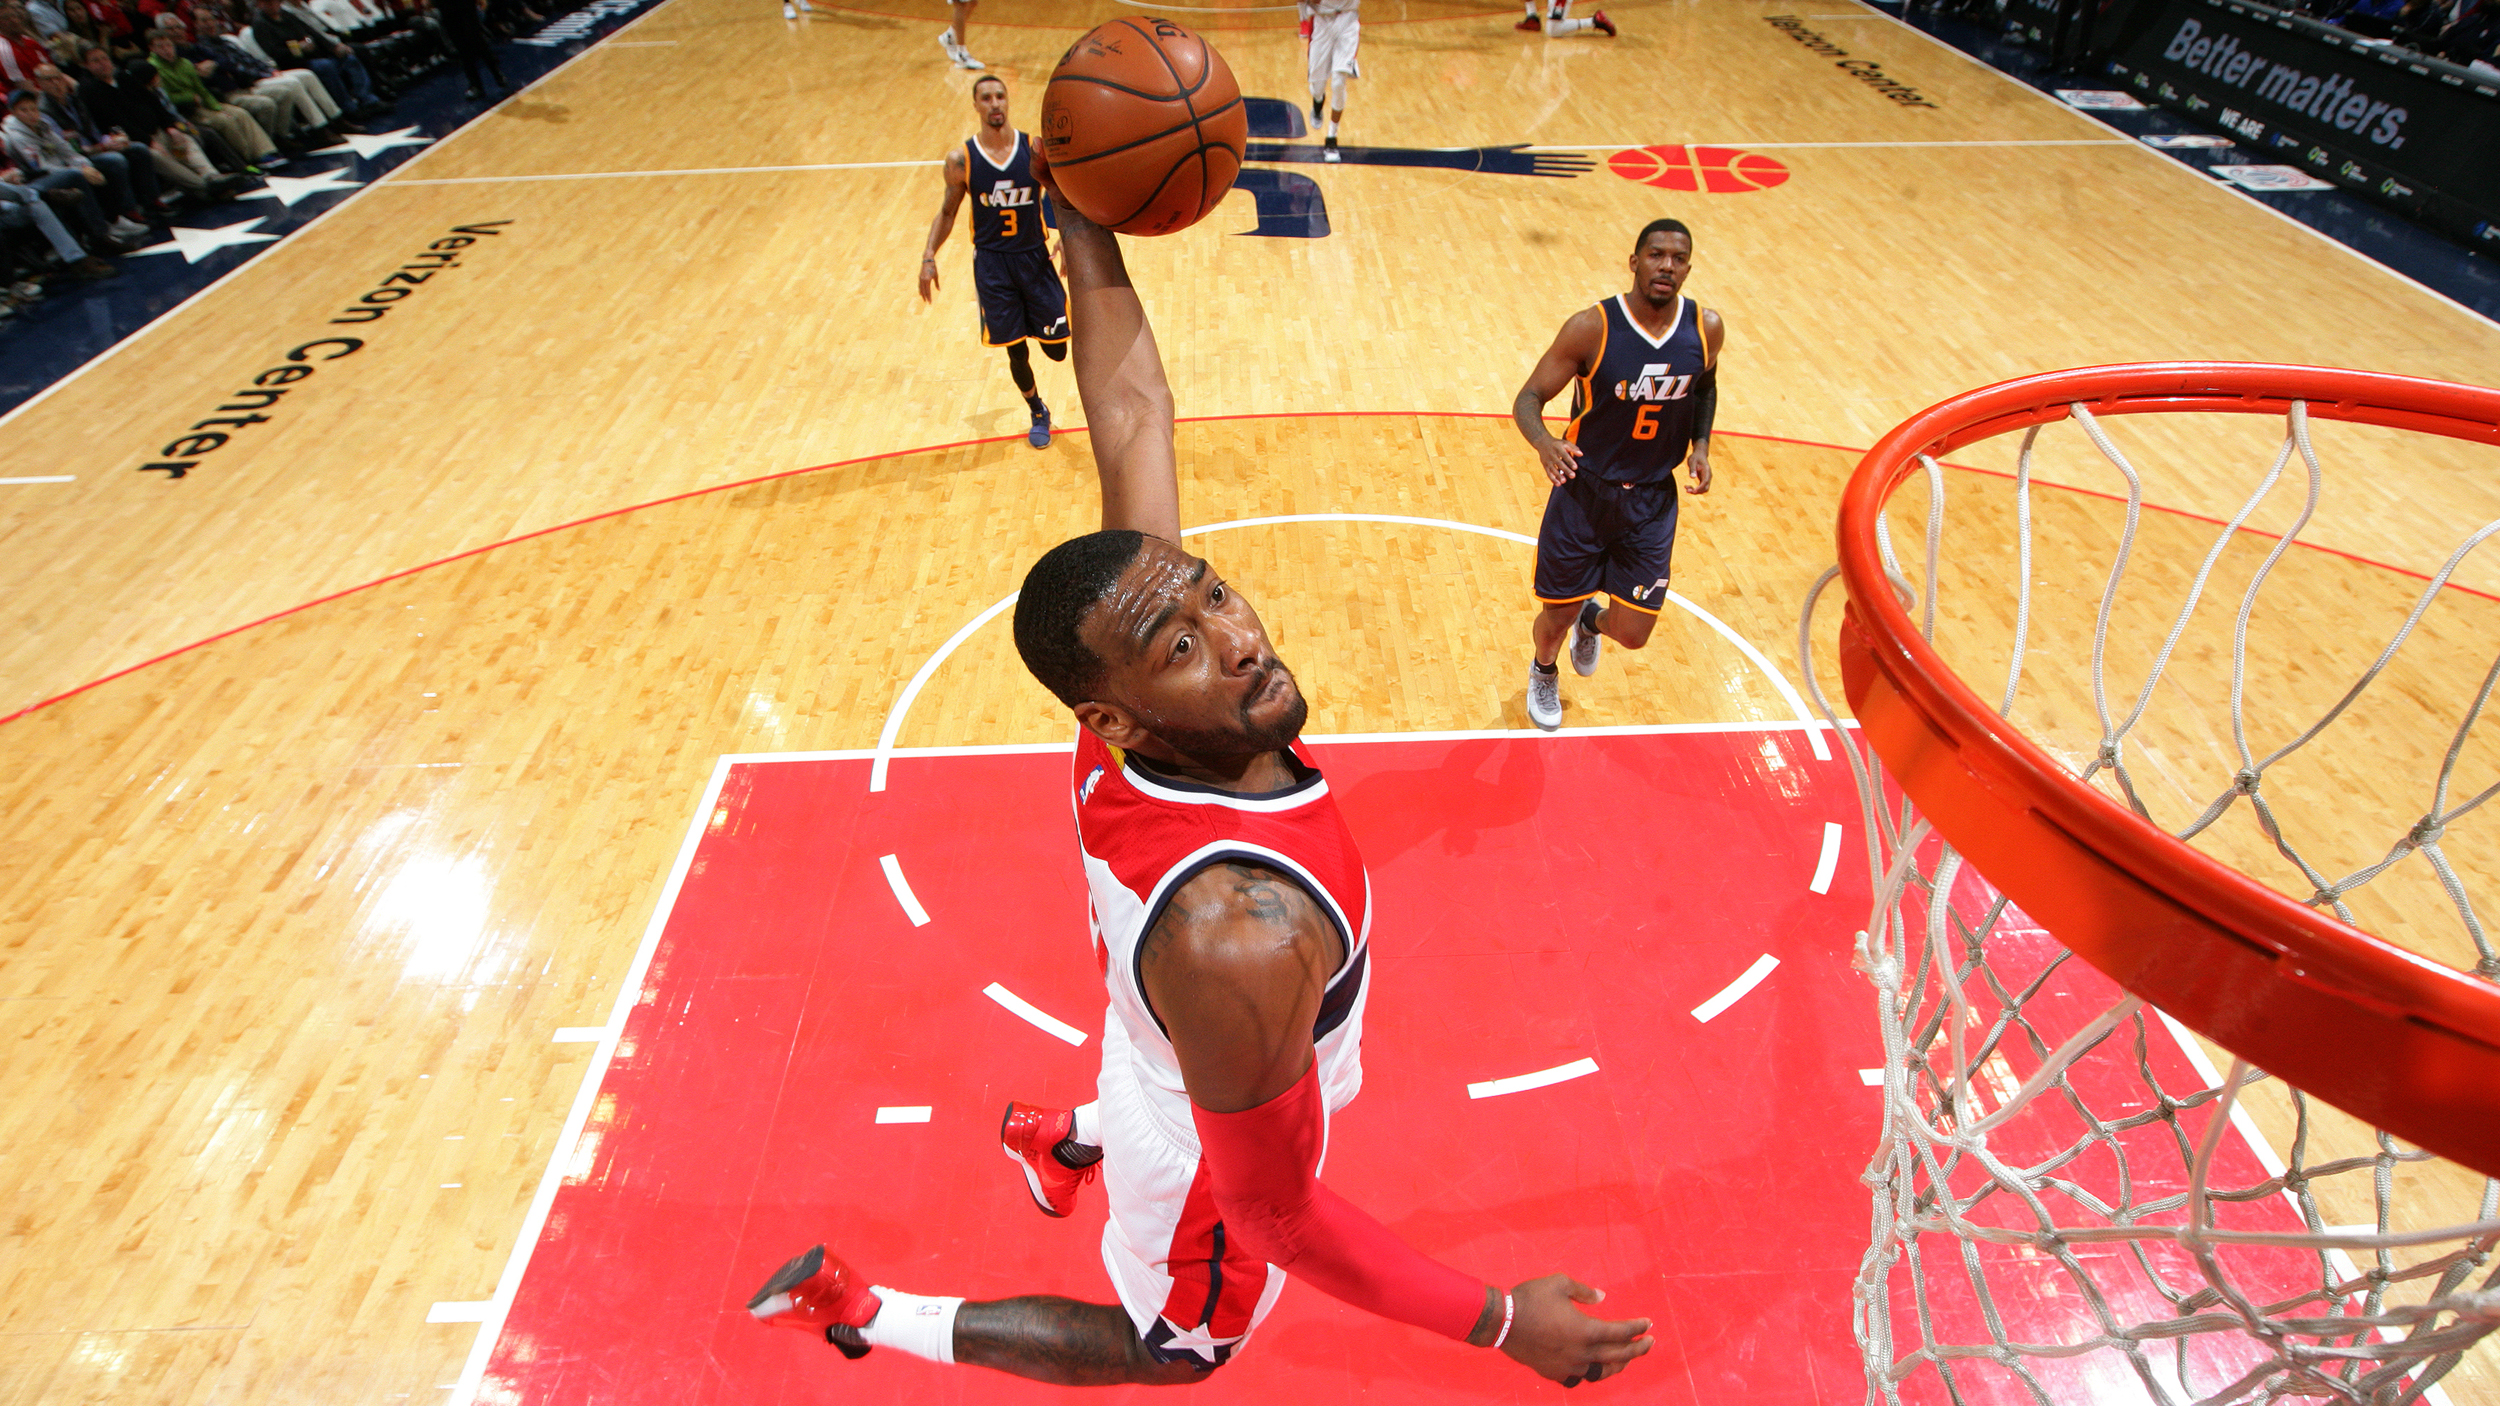 John Wall on his relationship with Bradley Beal and taking the Washington Wizards all the way